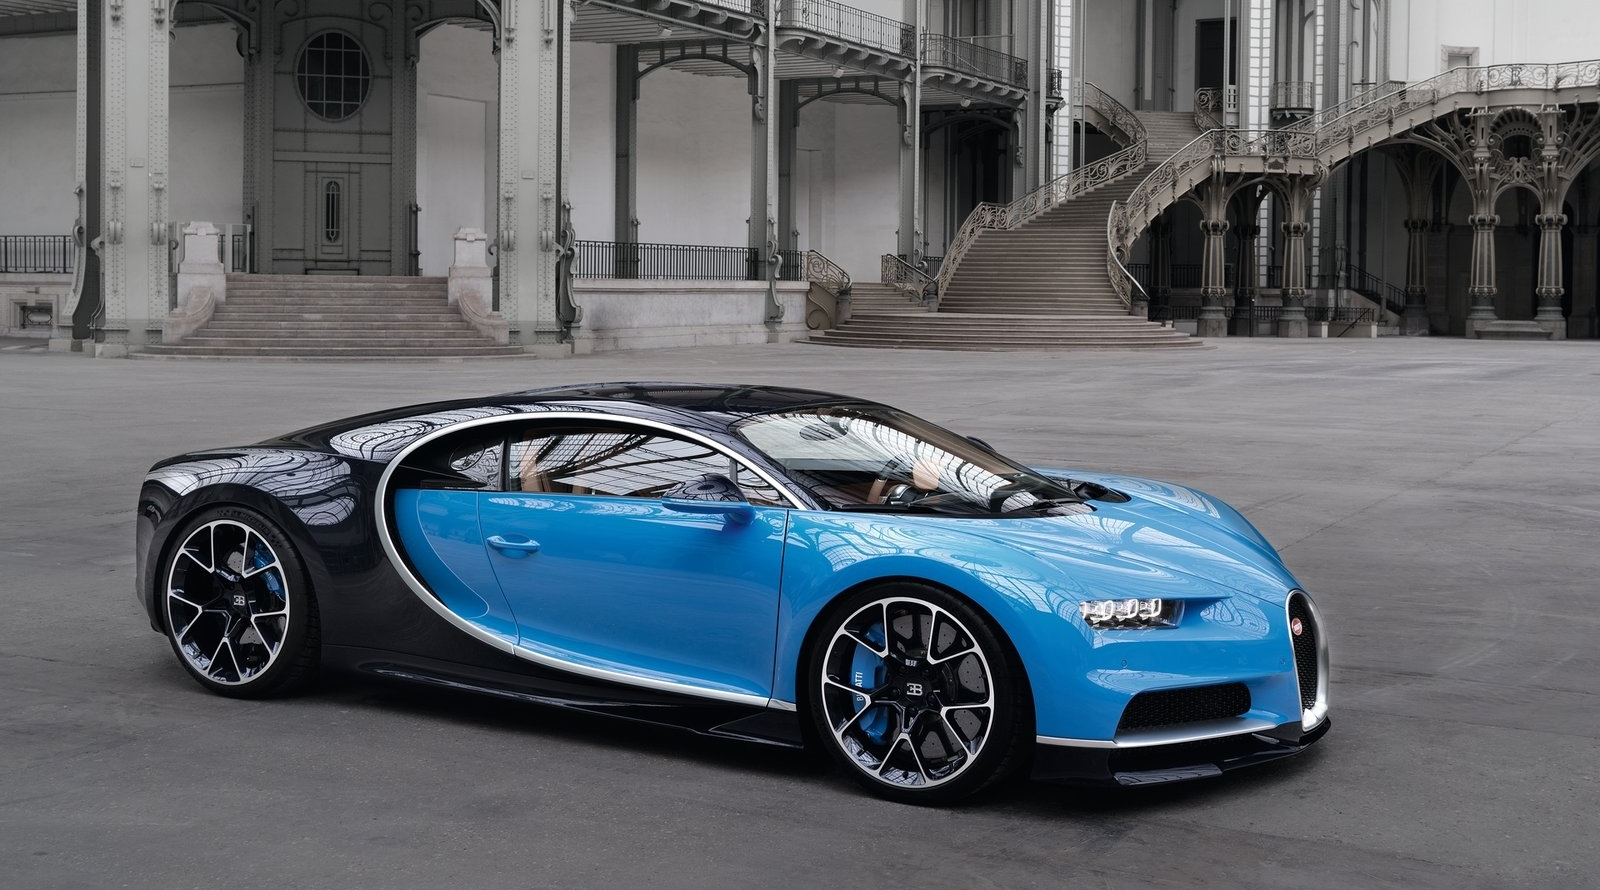 All hot cars pale in comparison to the Buggati Chiron